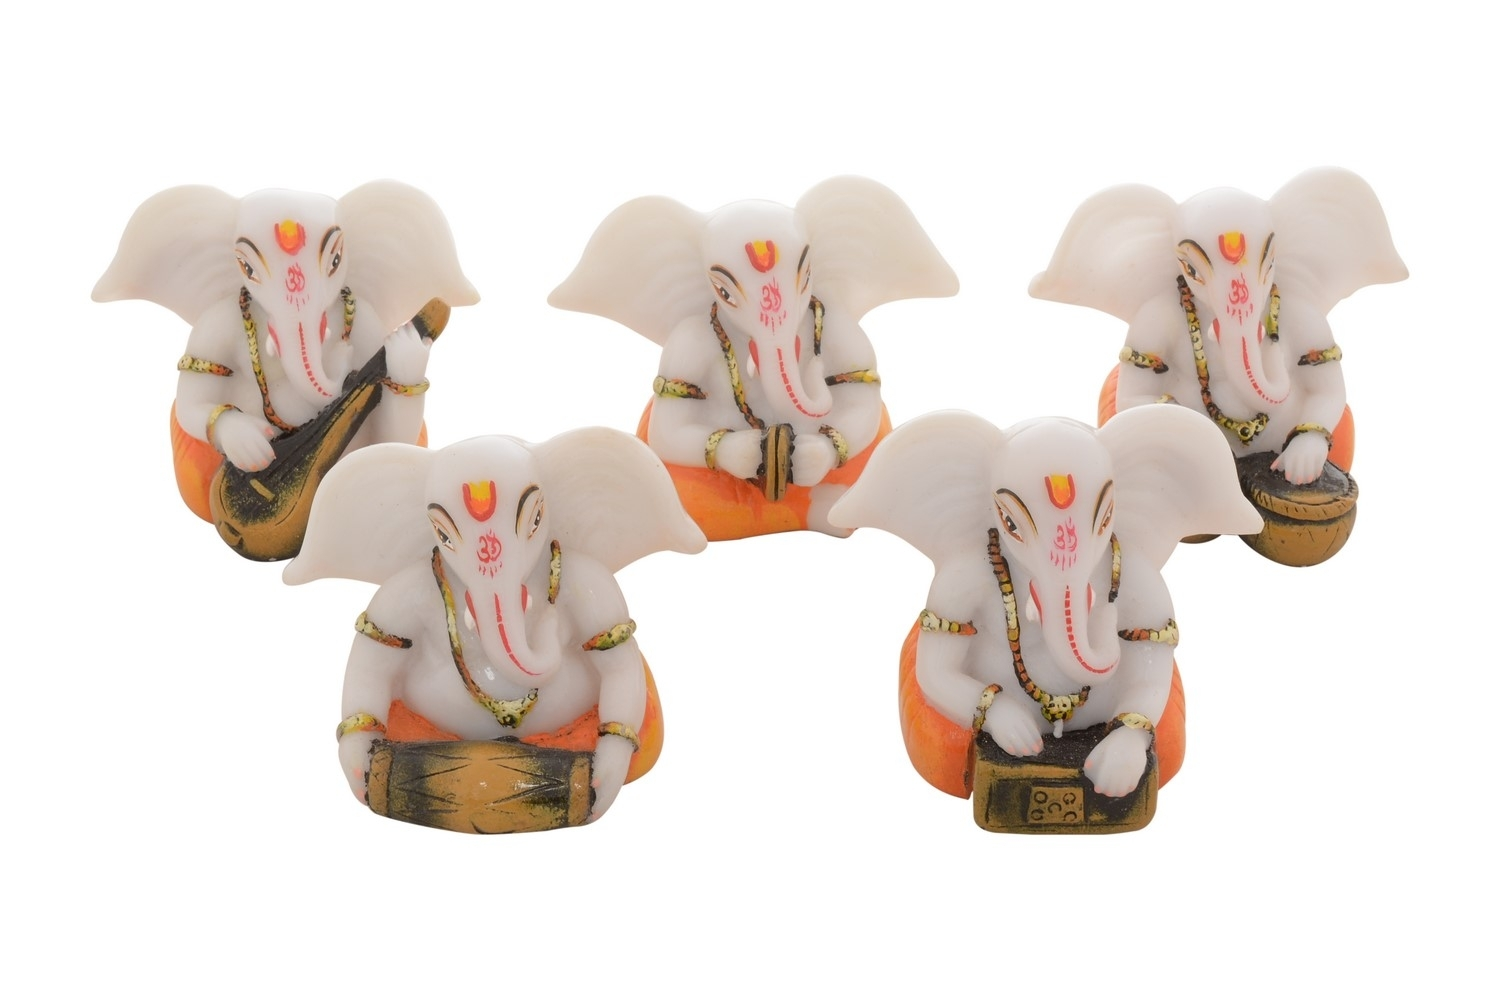 Set of 5 Lord Ganesha playing Musical Instruments Indian Home Decor